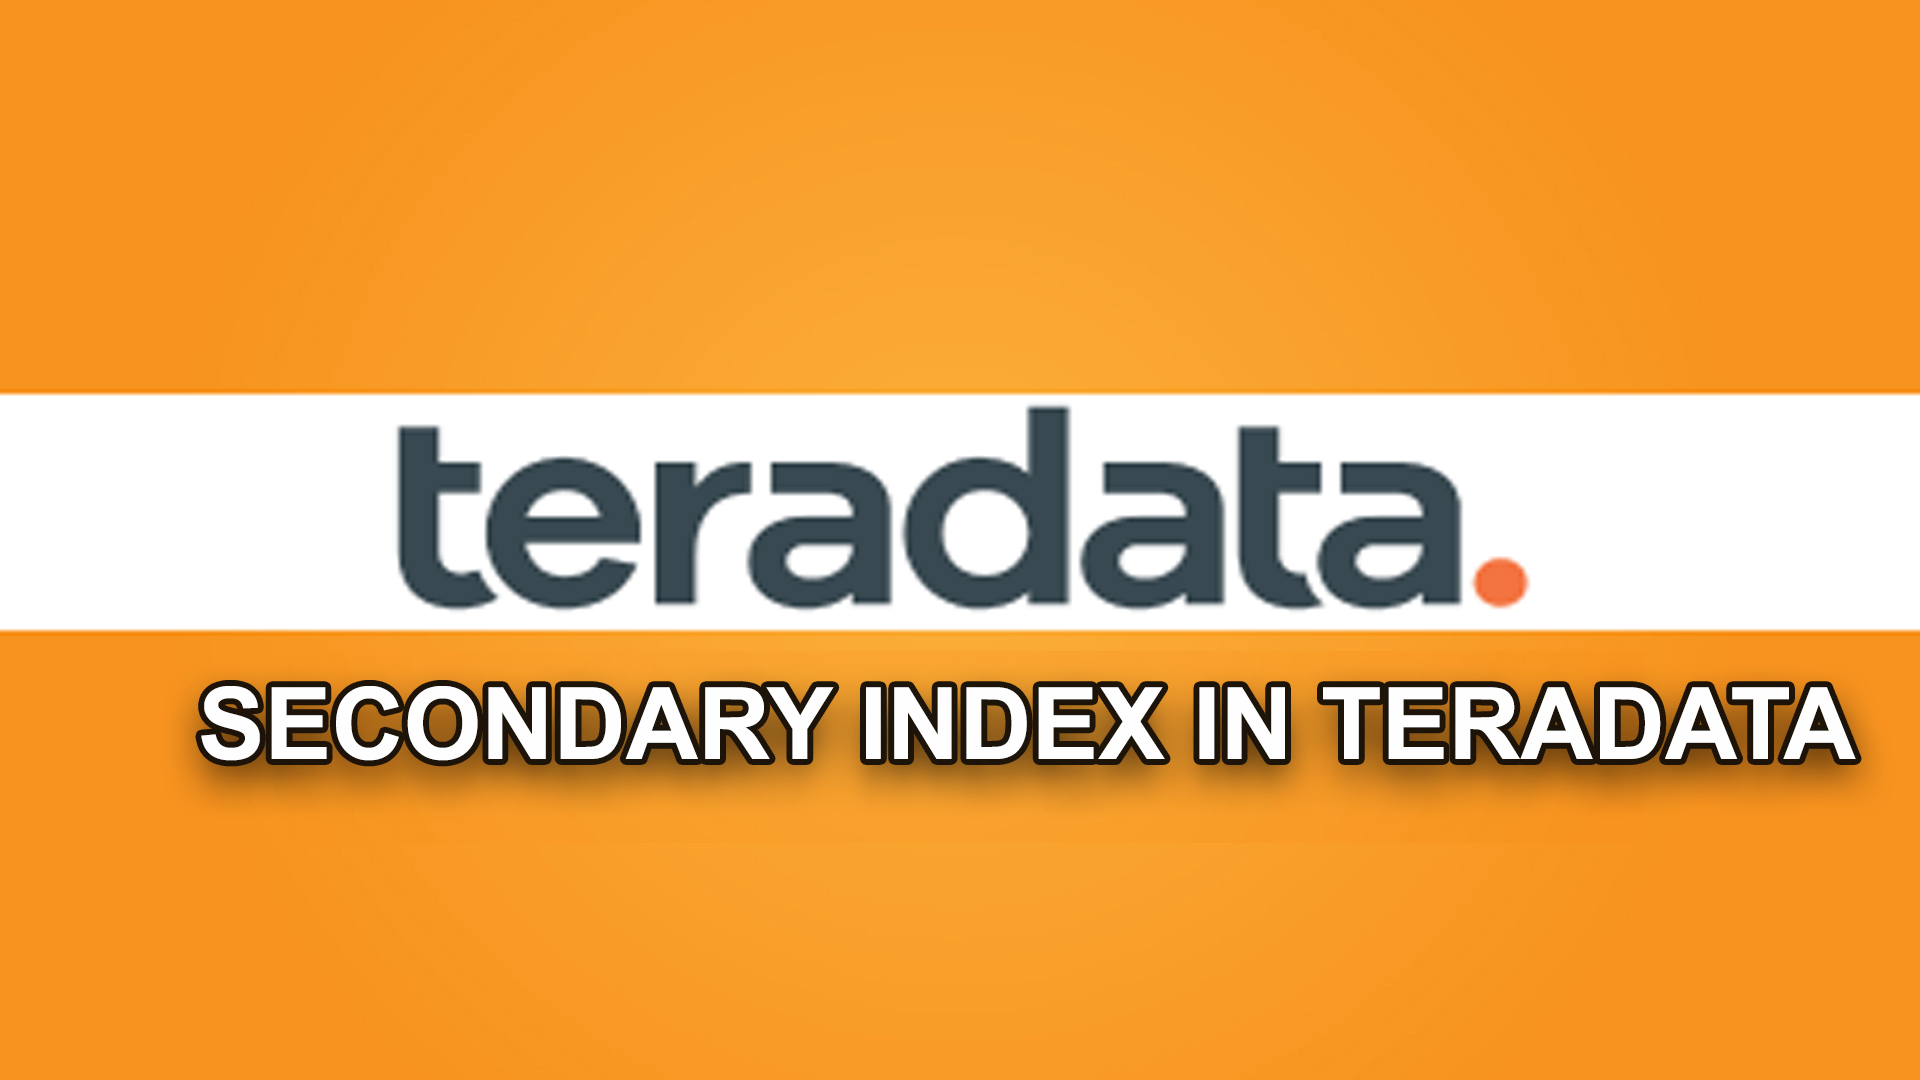 SECONDARY INDEX IN TERADATA